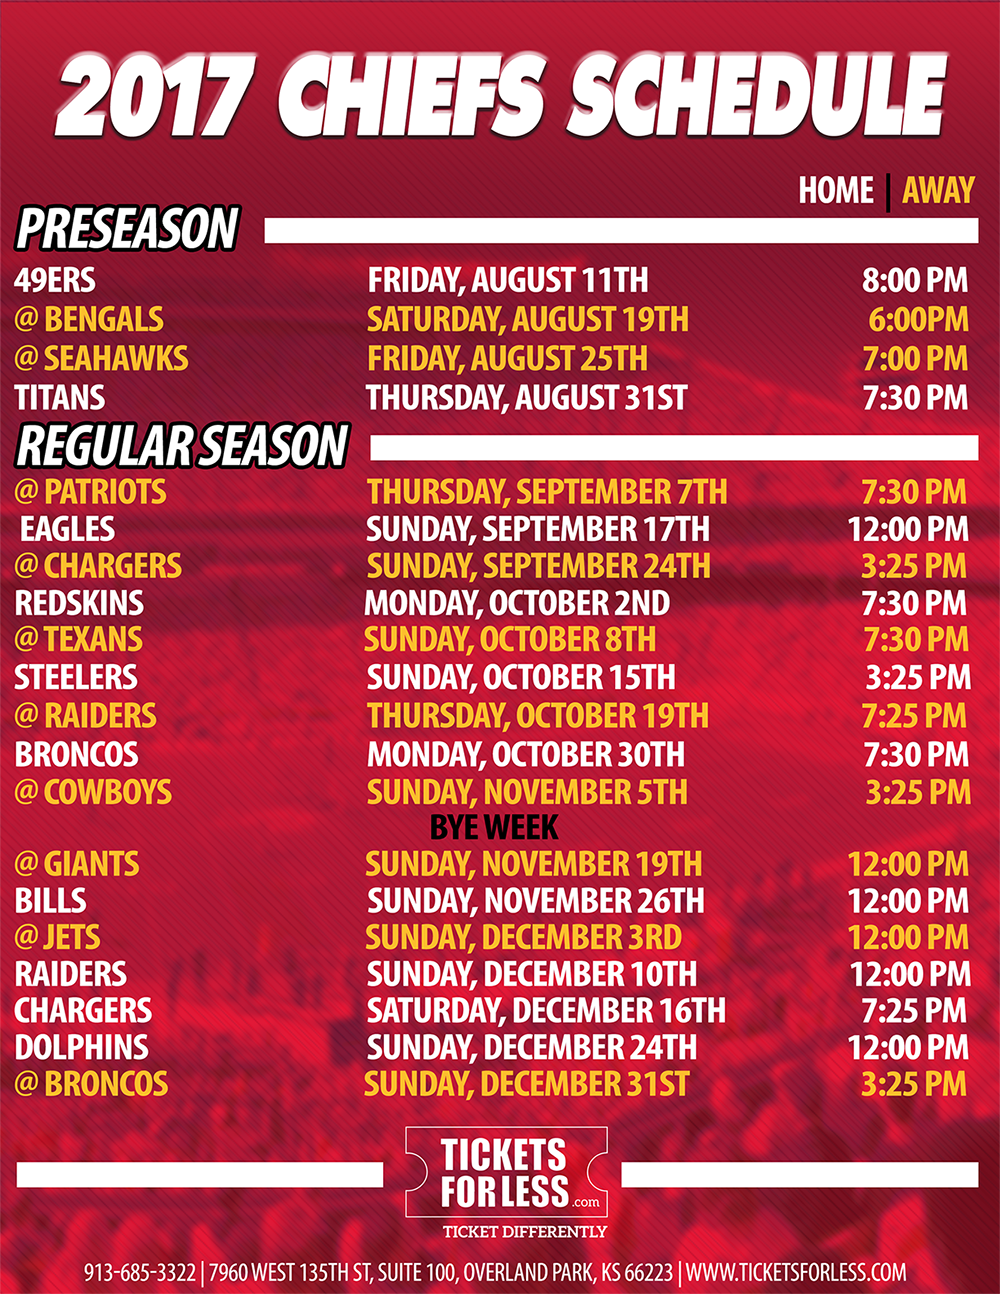 photograph relating to Kc Royals Printable Schedule known as 2017 Chiefs Printable Agenda - Kansas Metropolis Chiefs Routine